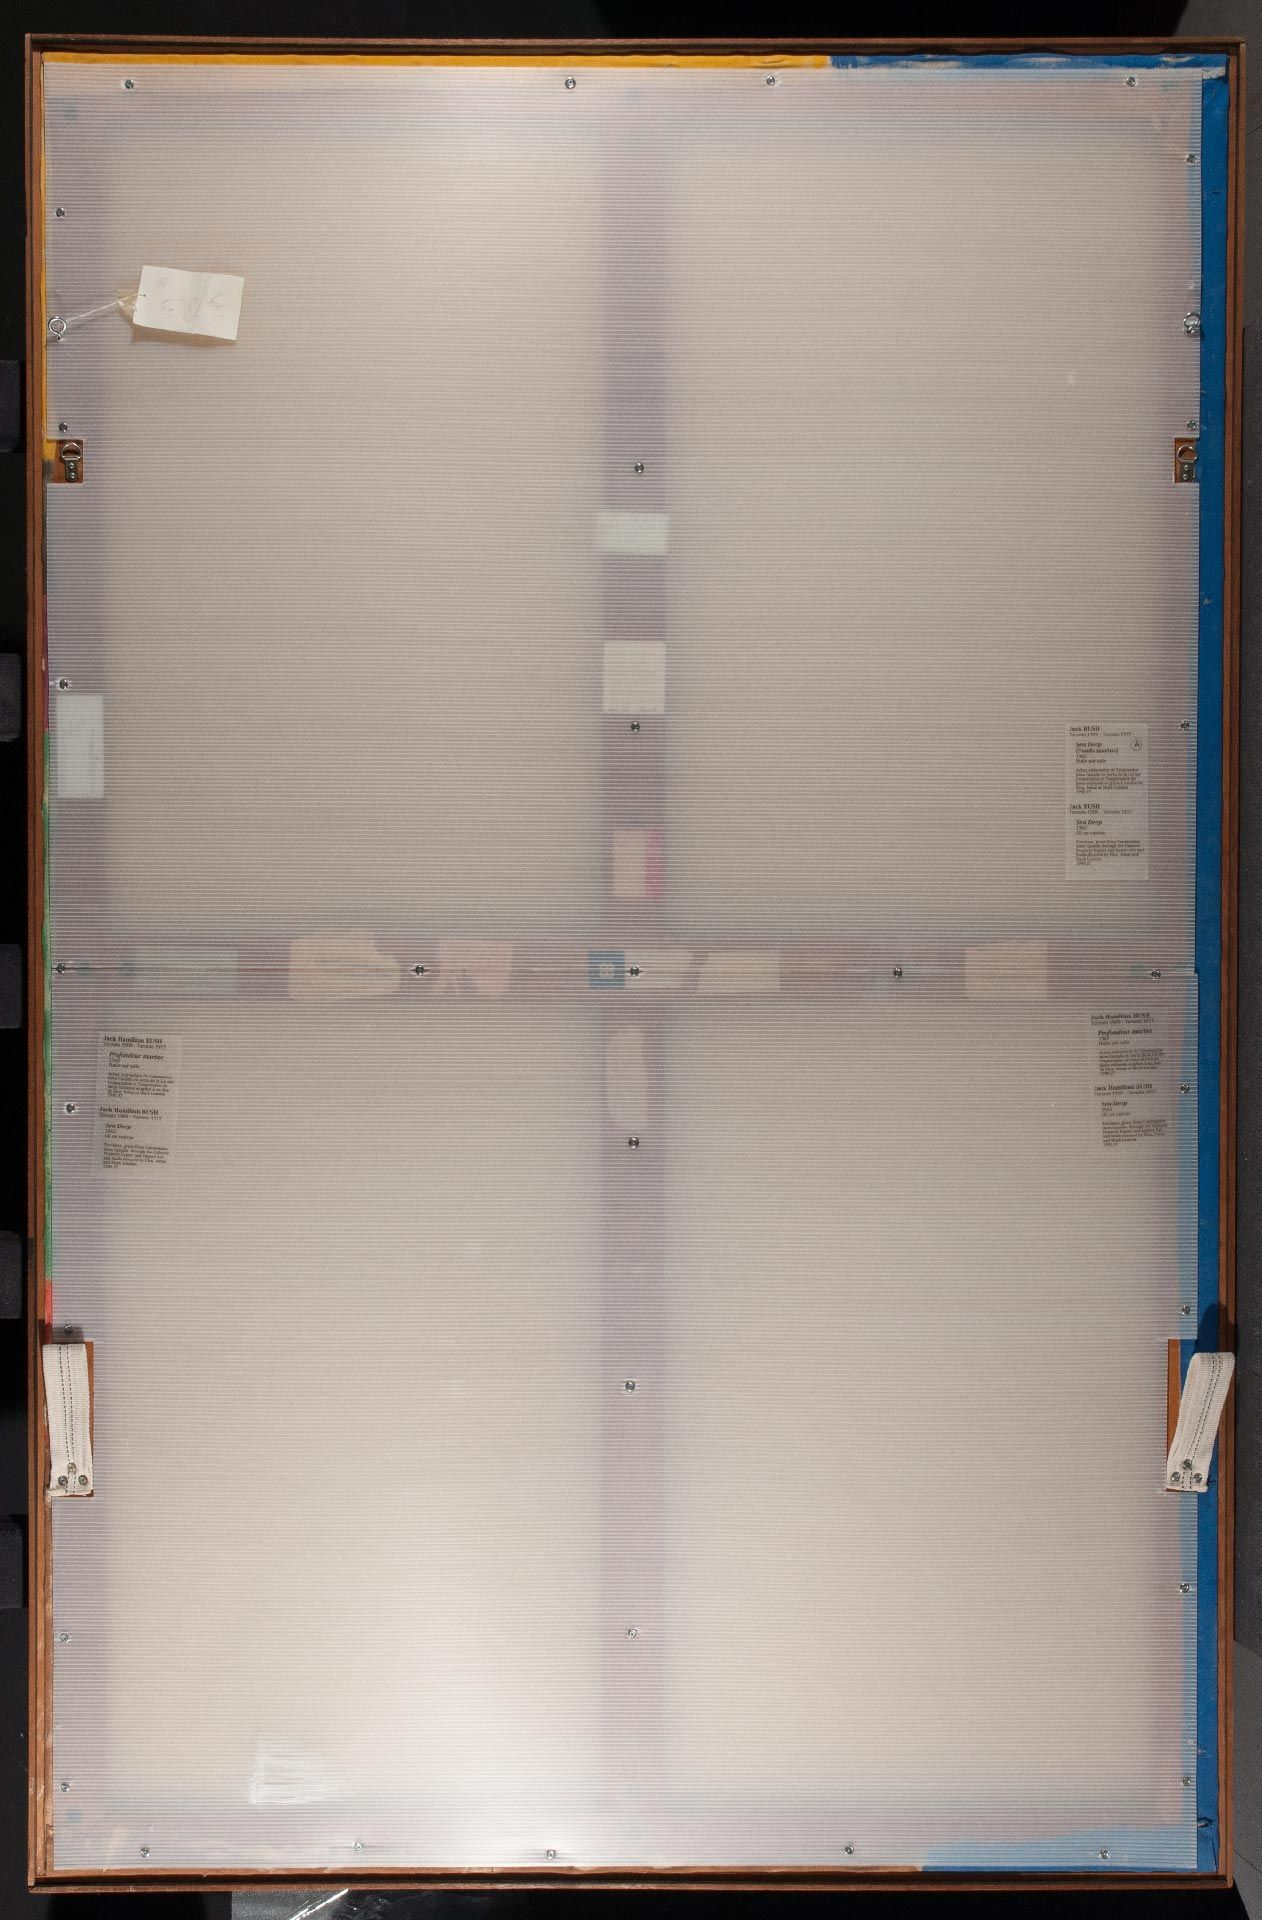 Screwed to the back of the stretcher, a semi-rigid backing board had prevented more serious damage from occurring during the accident, such as a perforation. In the lower left corner, the fluted plastic board was deformed in the area of strongest impact.